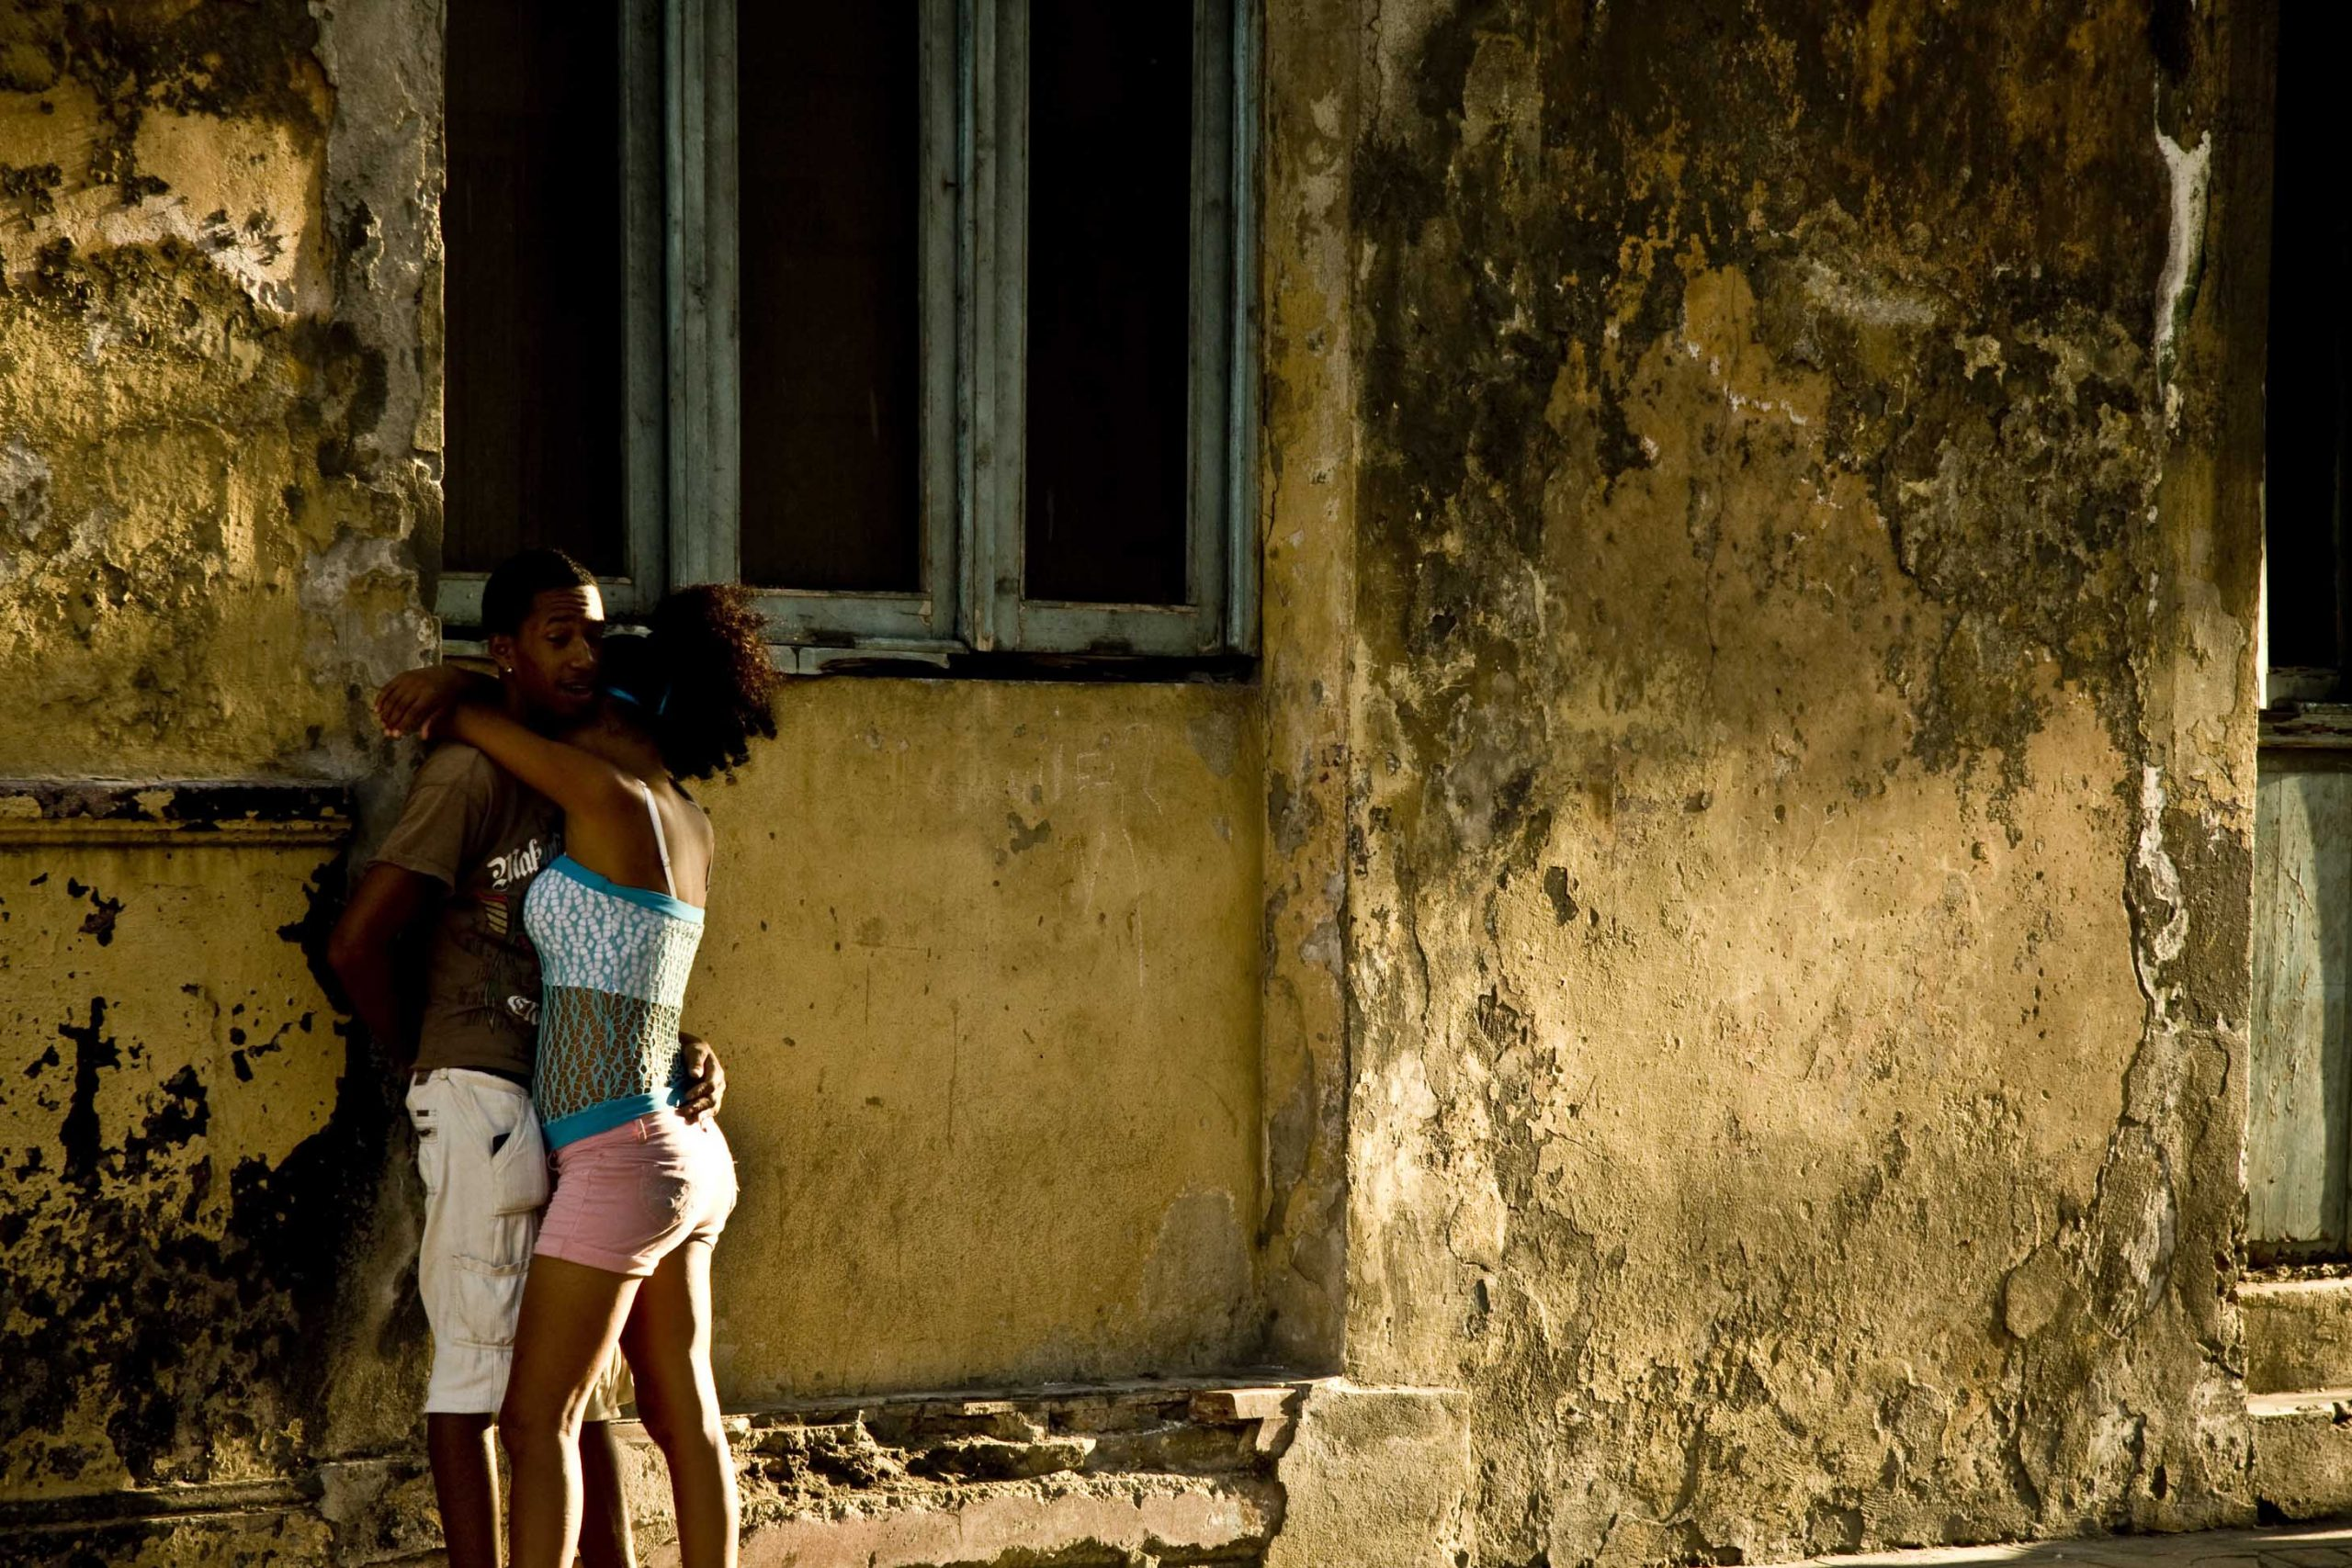 two young people embracing each other on the streets of cuba